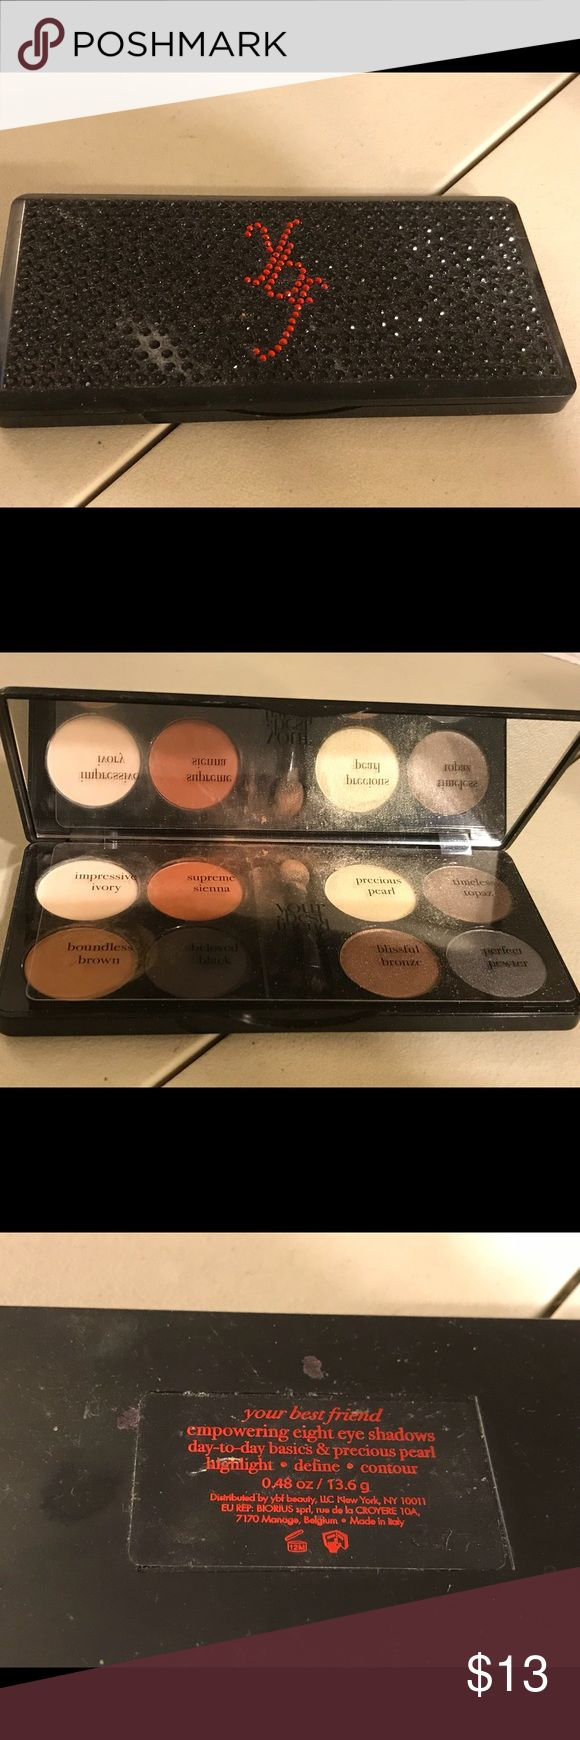 Your best friend palette Your best friend palette, empowering eight eye shadows, day to day basics and precious pearl . Highlight, define and contour. Pre-owned. Thanks for checking out Luxury1cosmetics!! Offers are welcomed, bundles are discounted!!! your best friend Makeup